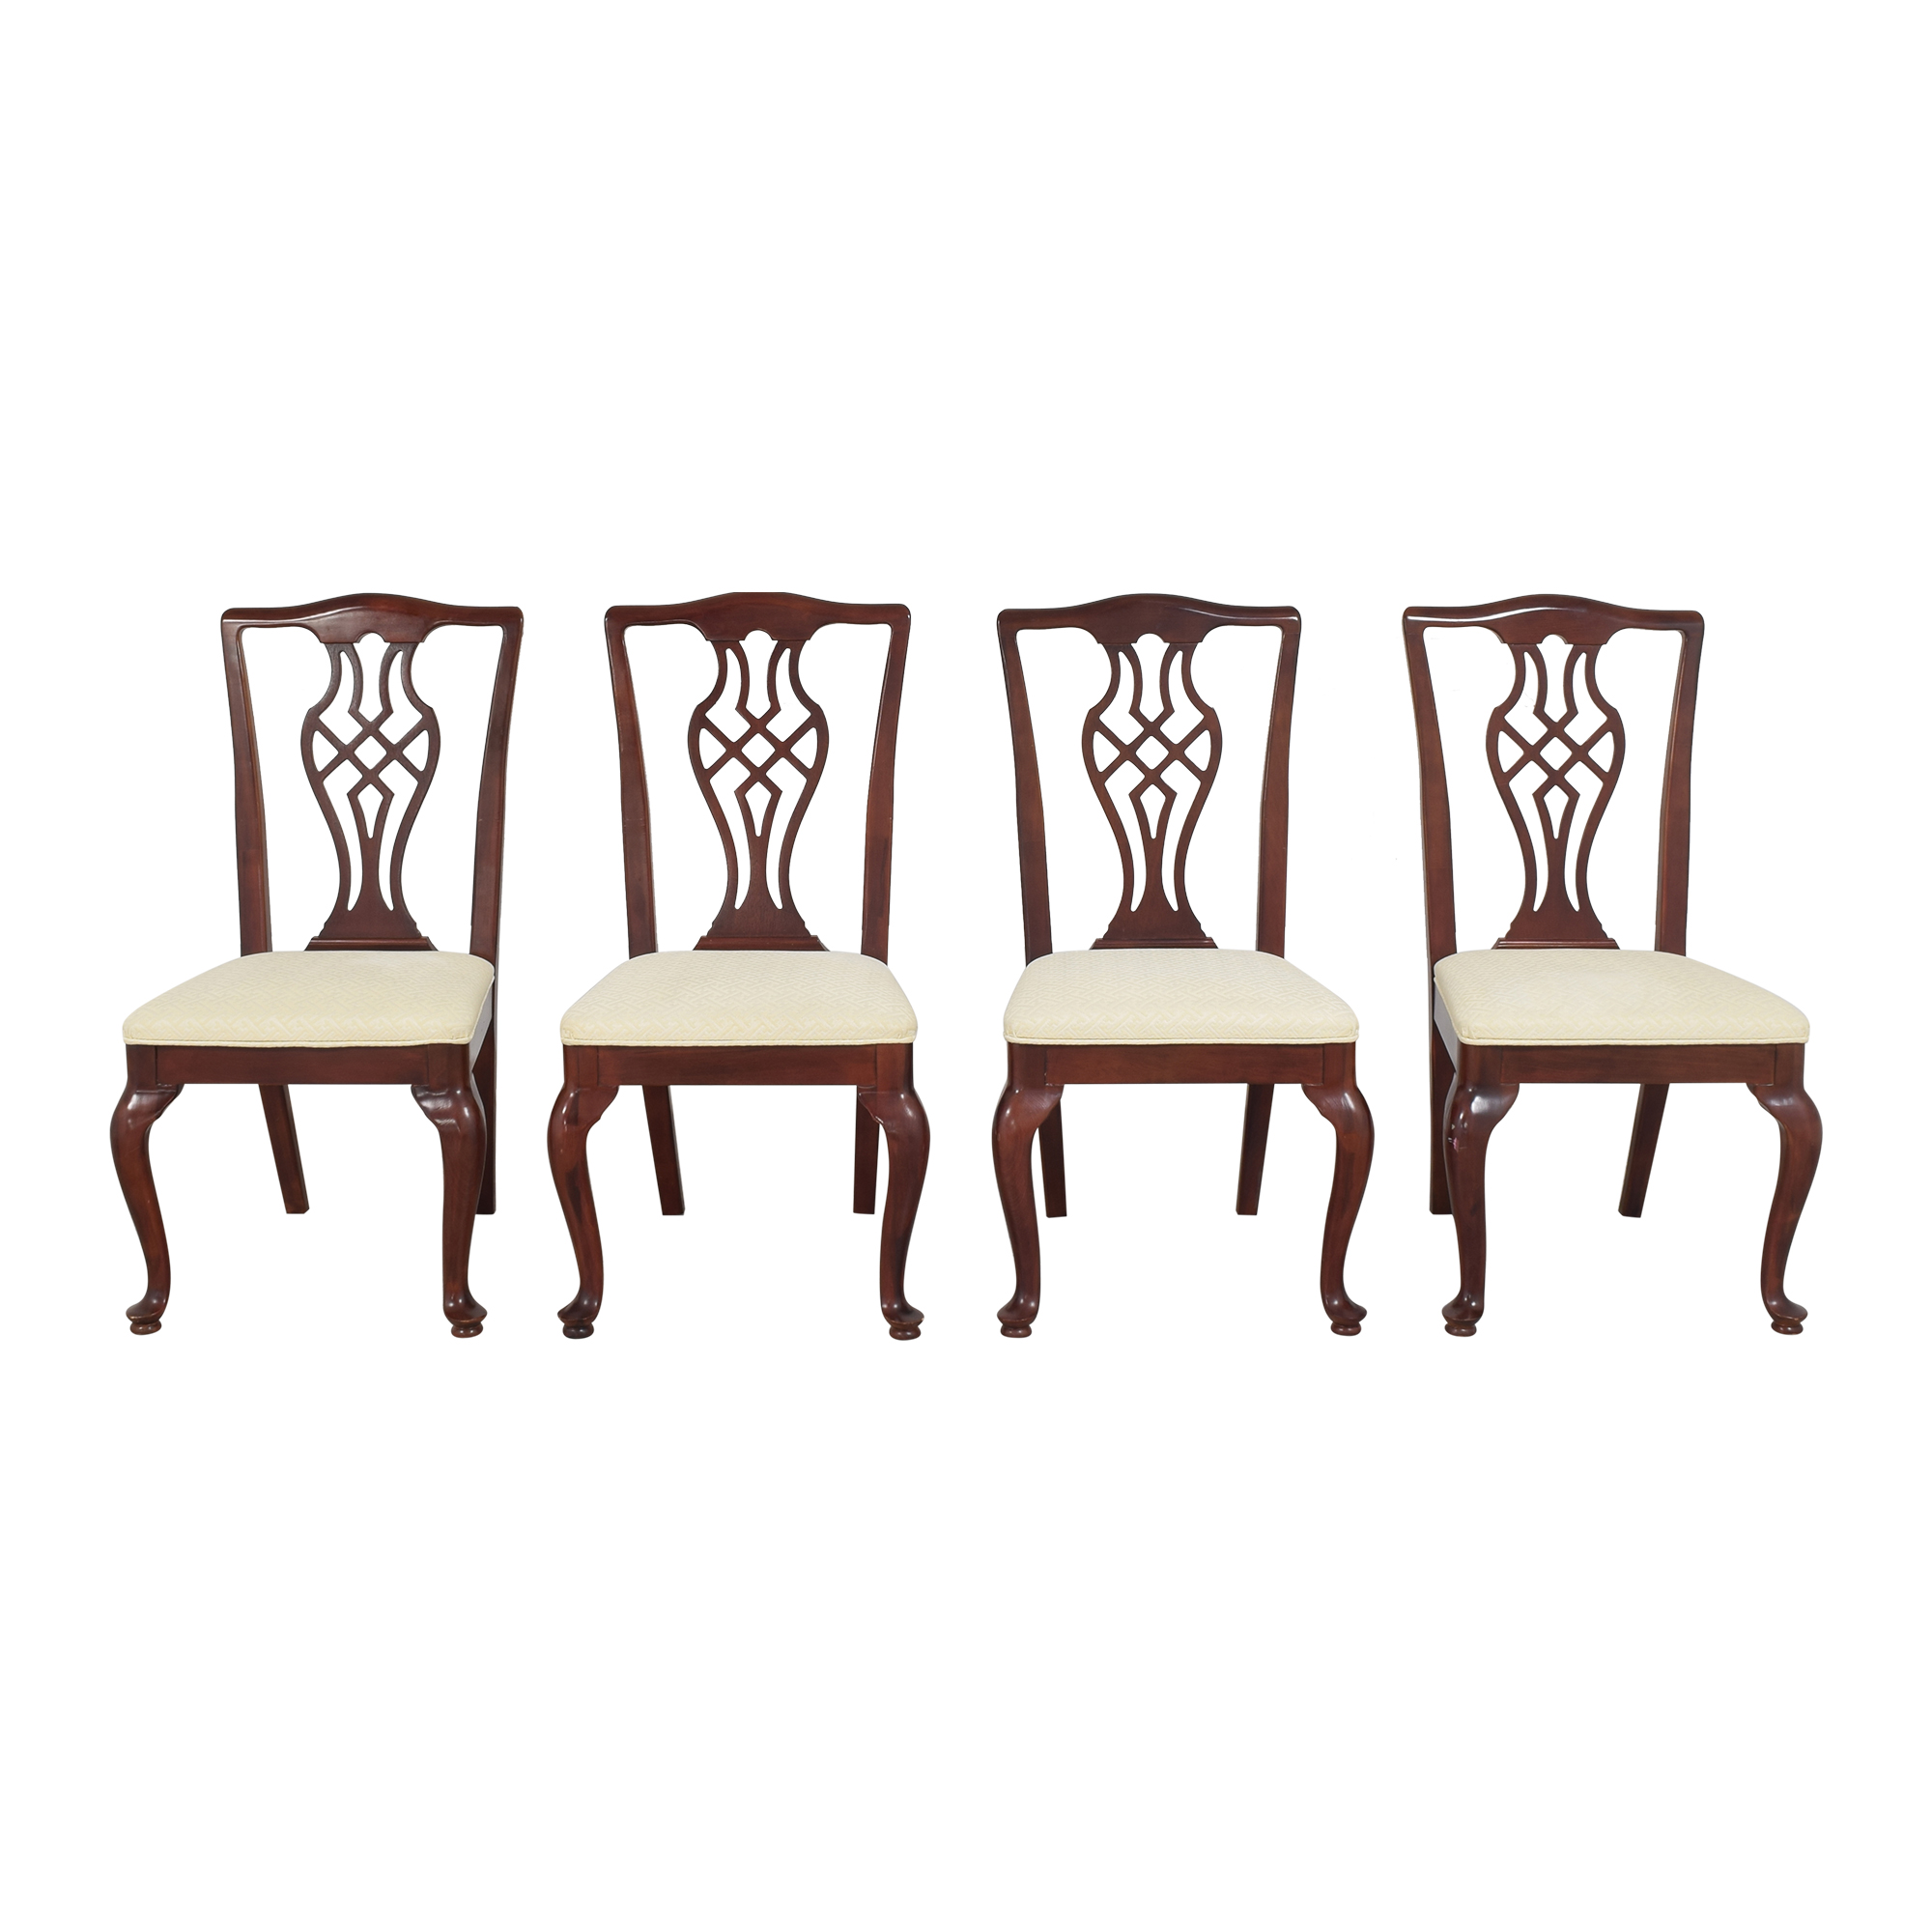 Drexel Heritage Drexel Heritage Chippendale Dining Chairs for sale